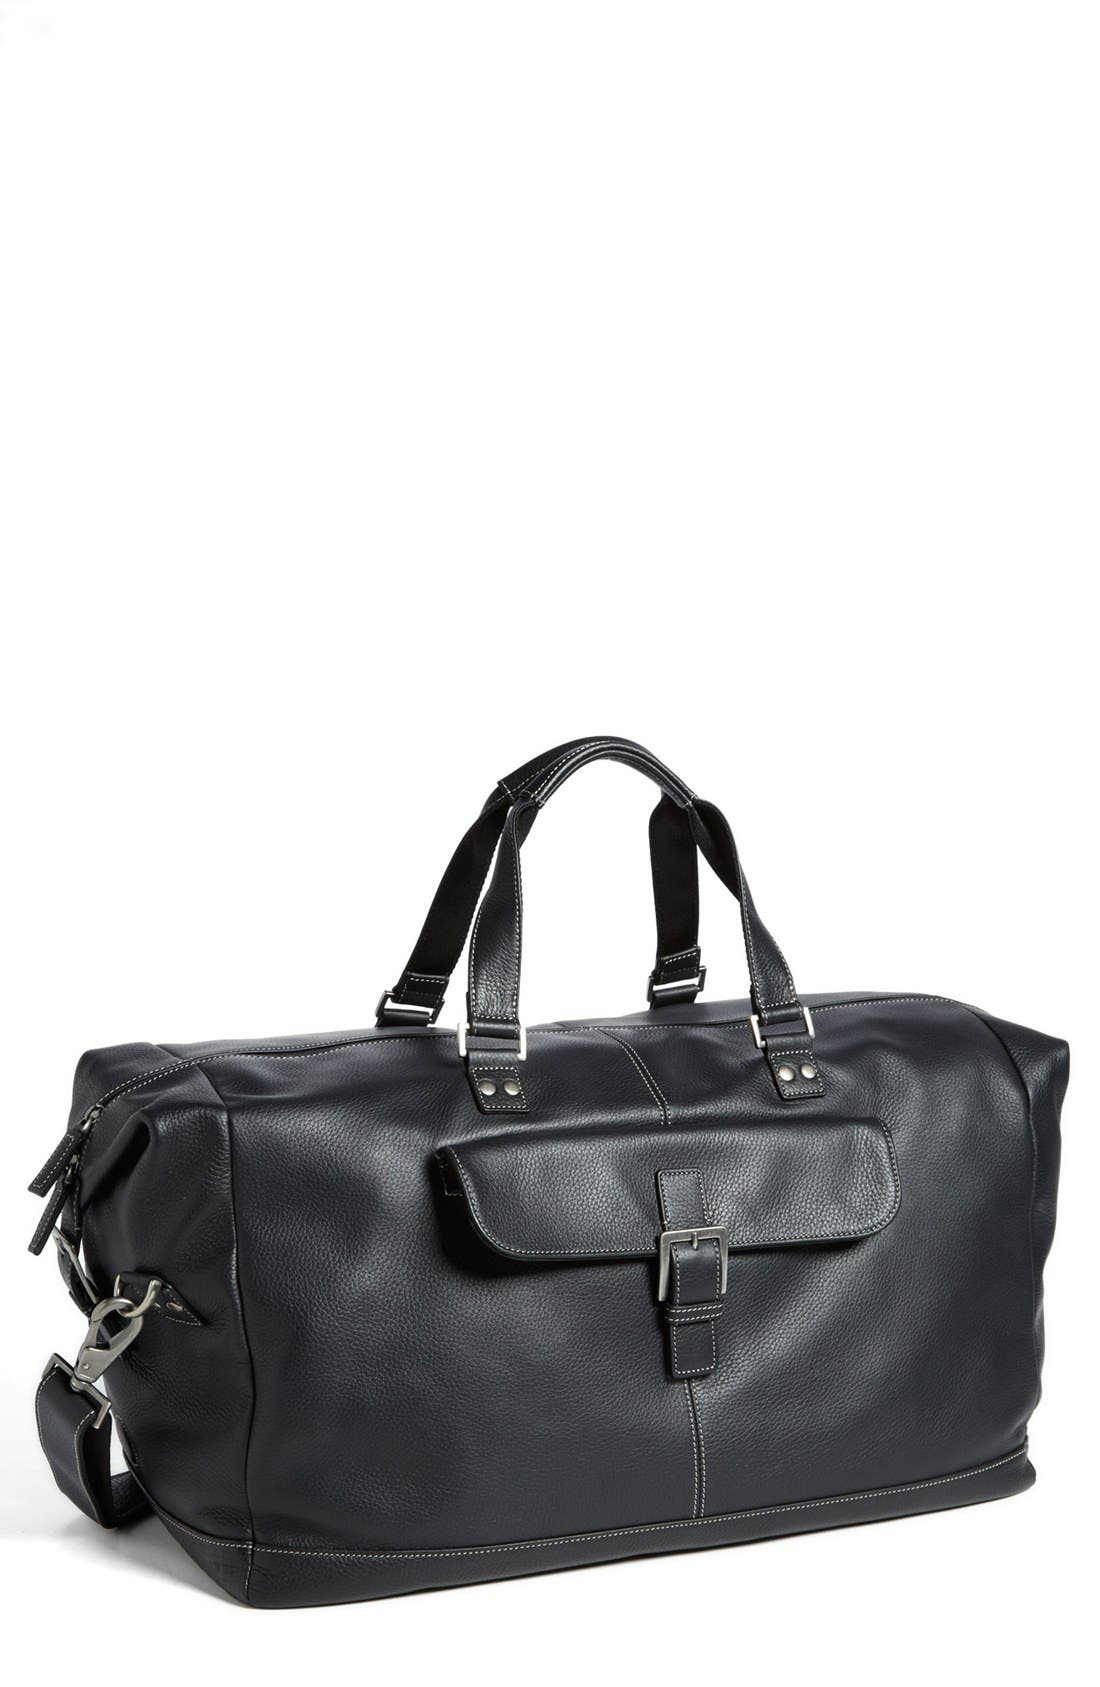 BOCONI, Tyler Leather Cargo Duffle Bag, Main thumbnail 1, color, BLACK/ KHAKI